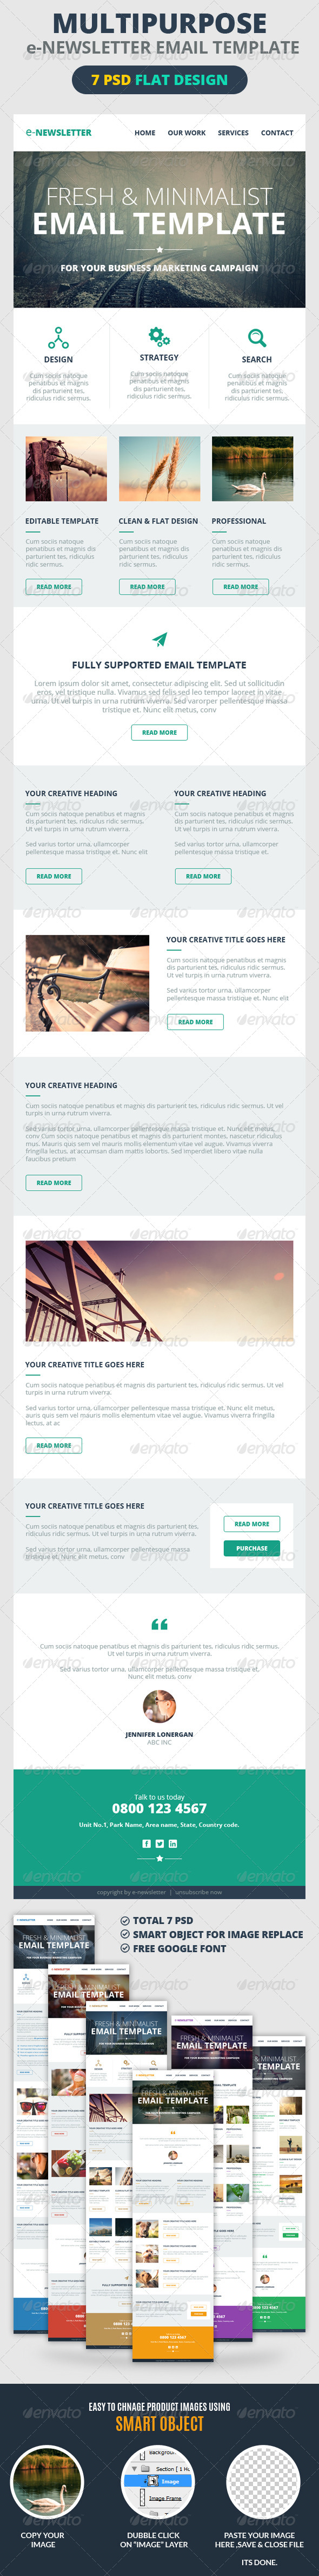 GraphicRiver Multipurpose E-Newsletter Email Template 7201434